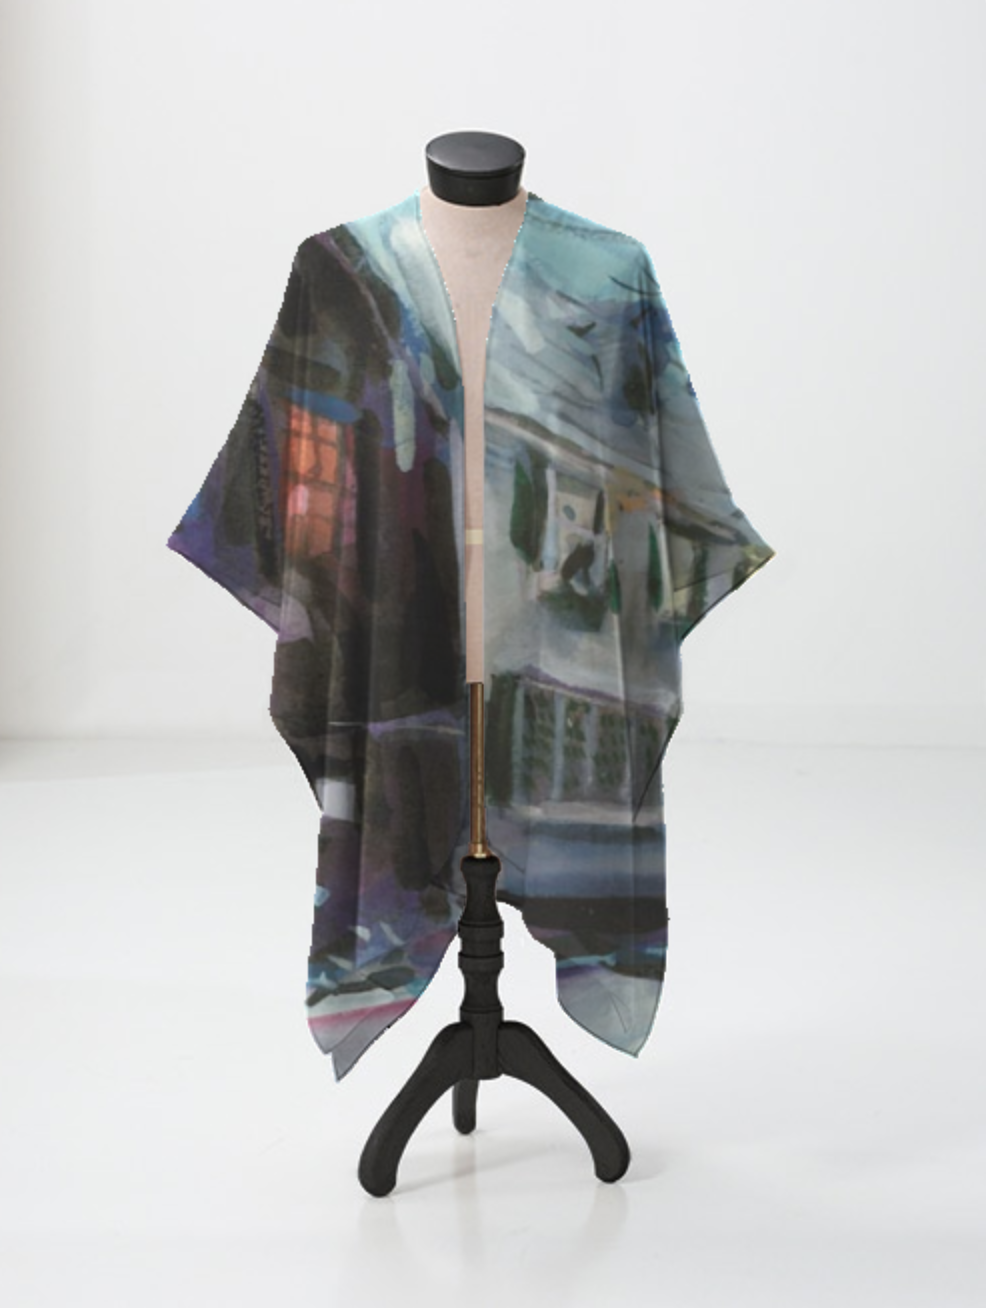 Sheer-Wraps-WilliamHeydt-VidaCollection2018-2.png